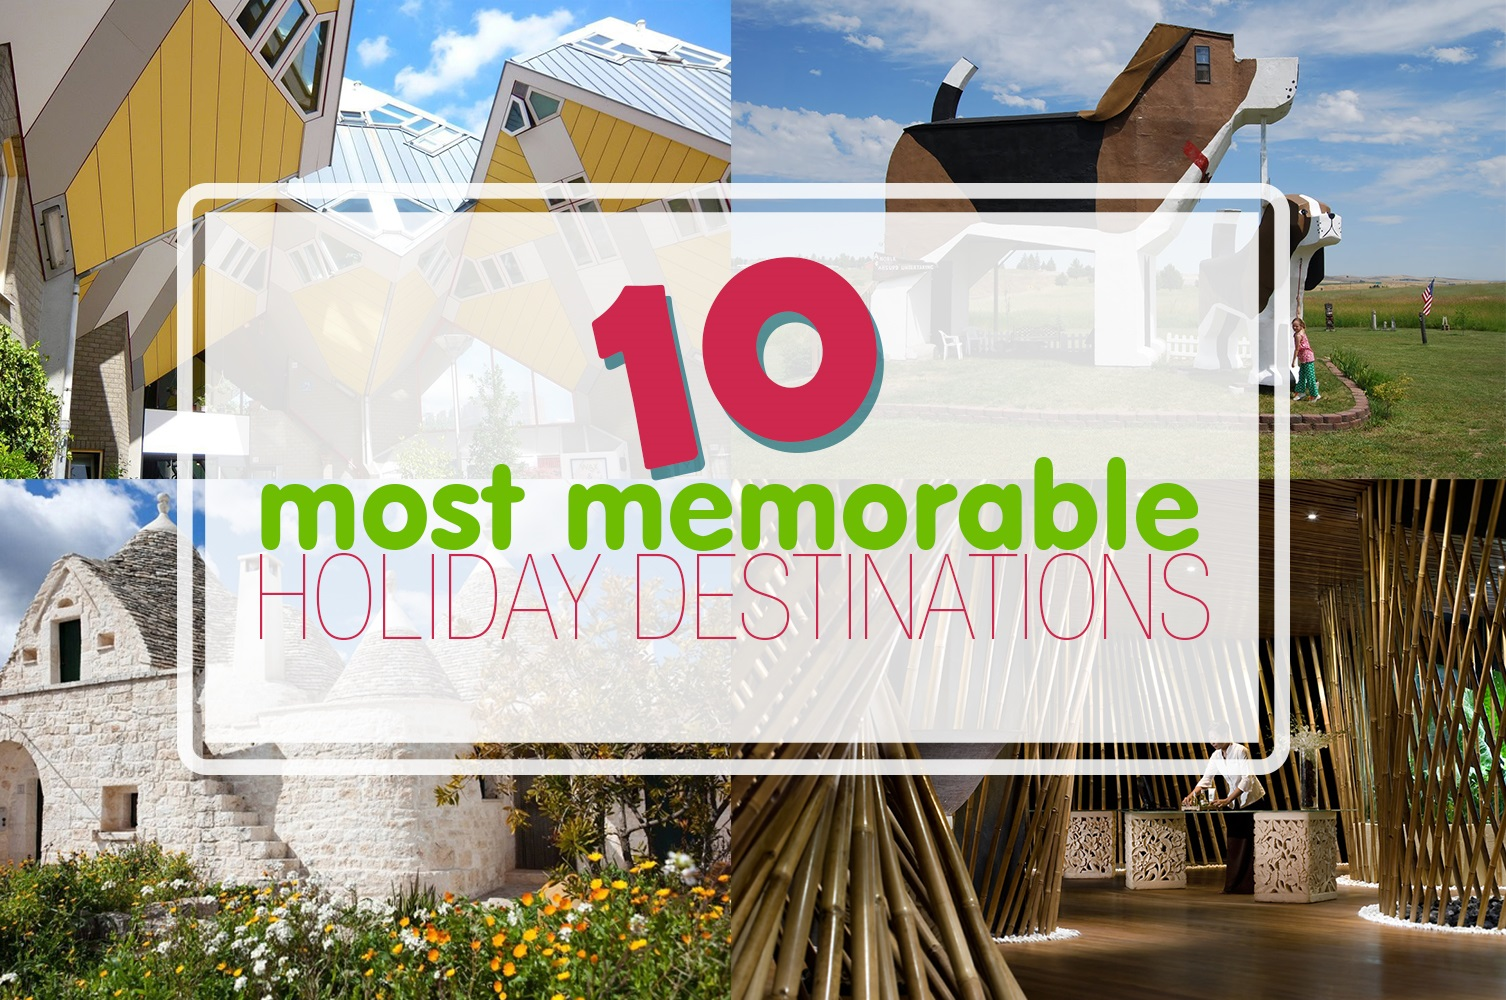 10-most-memorable-holiday-destinations-just3ds.com-1